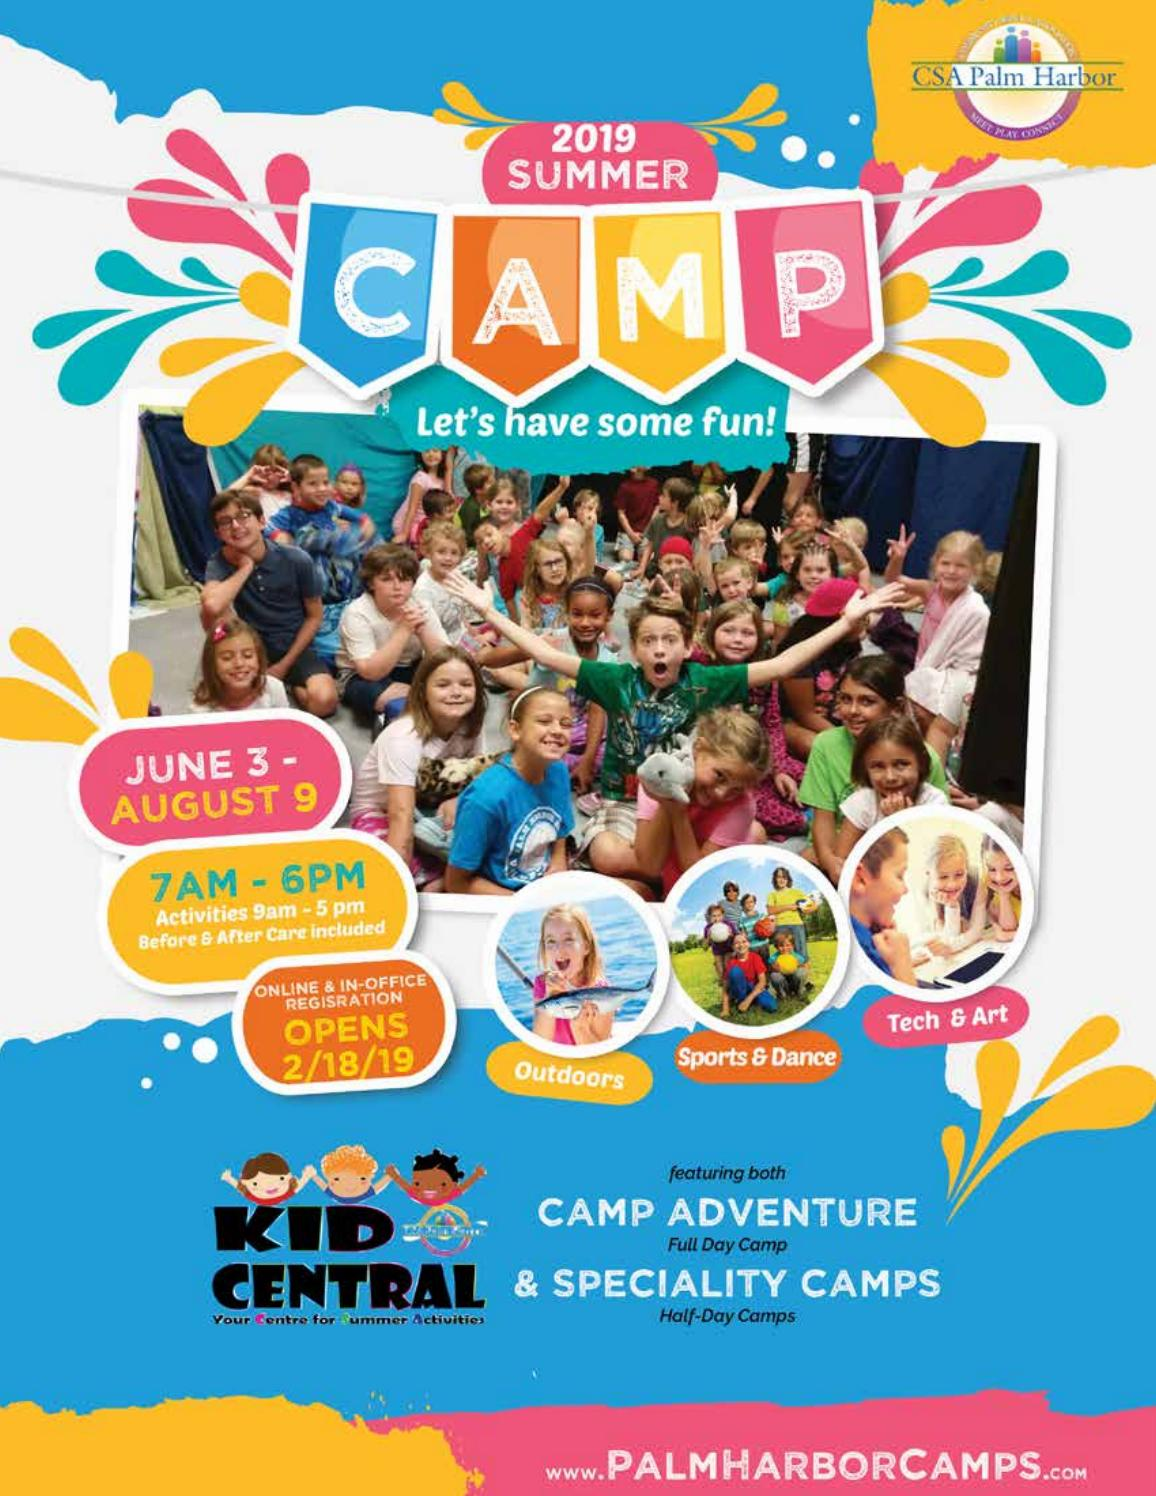 Csa S Summer Camp Guide 2019 By Csa Palm Harbor Issuu